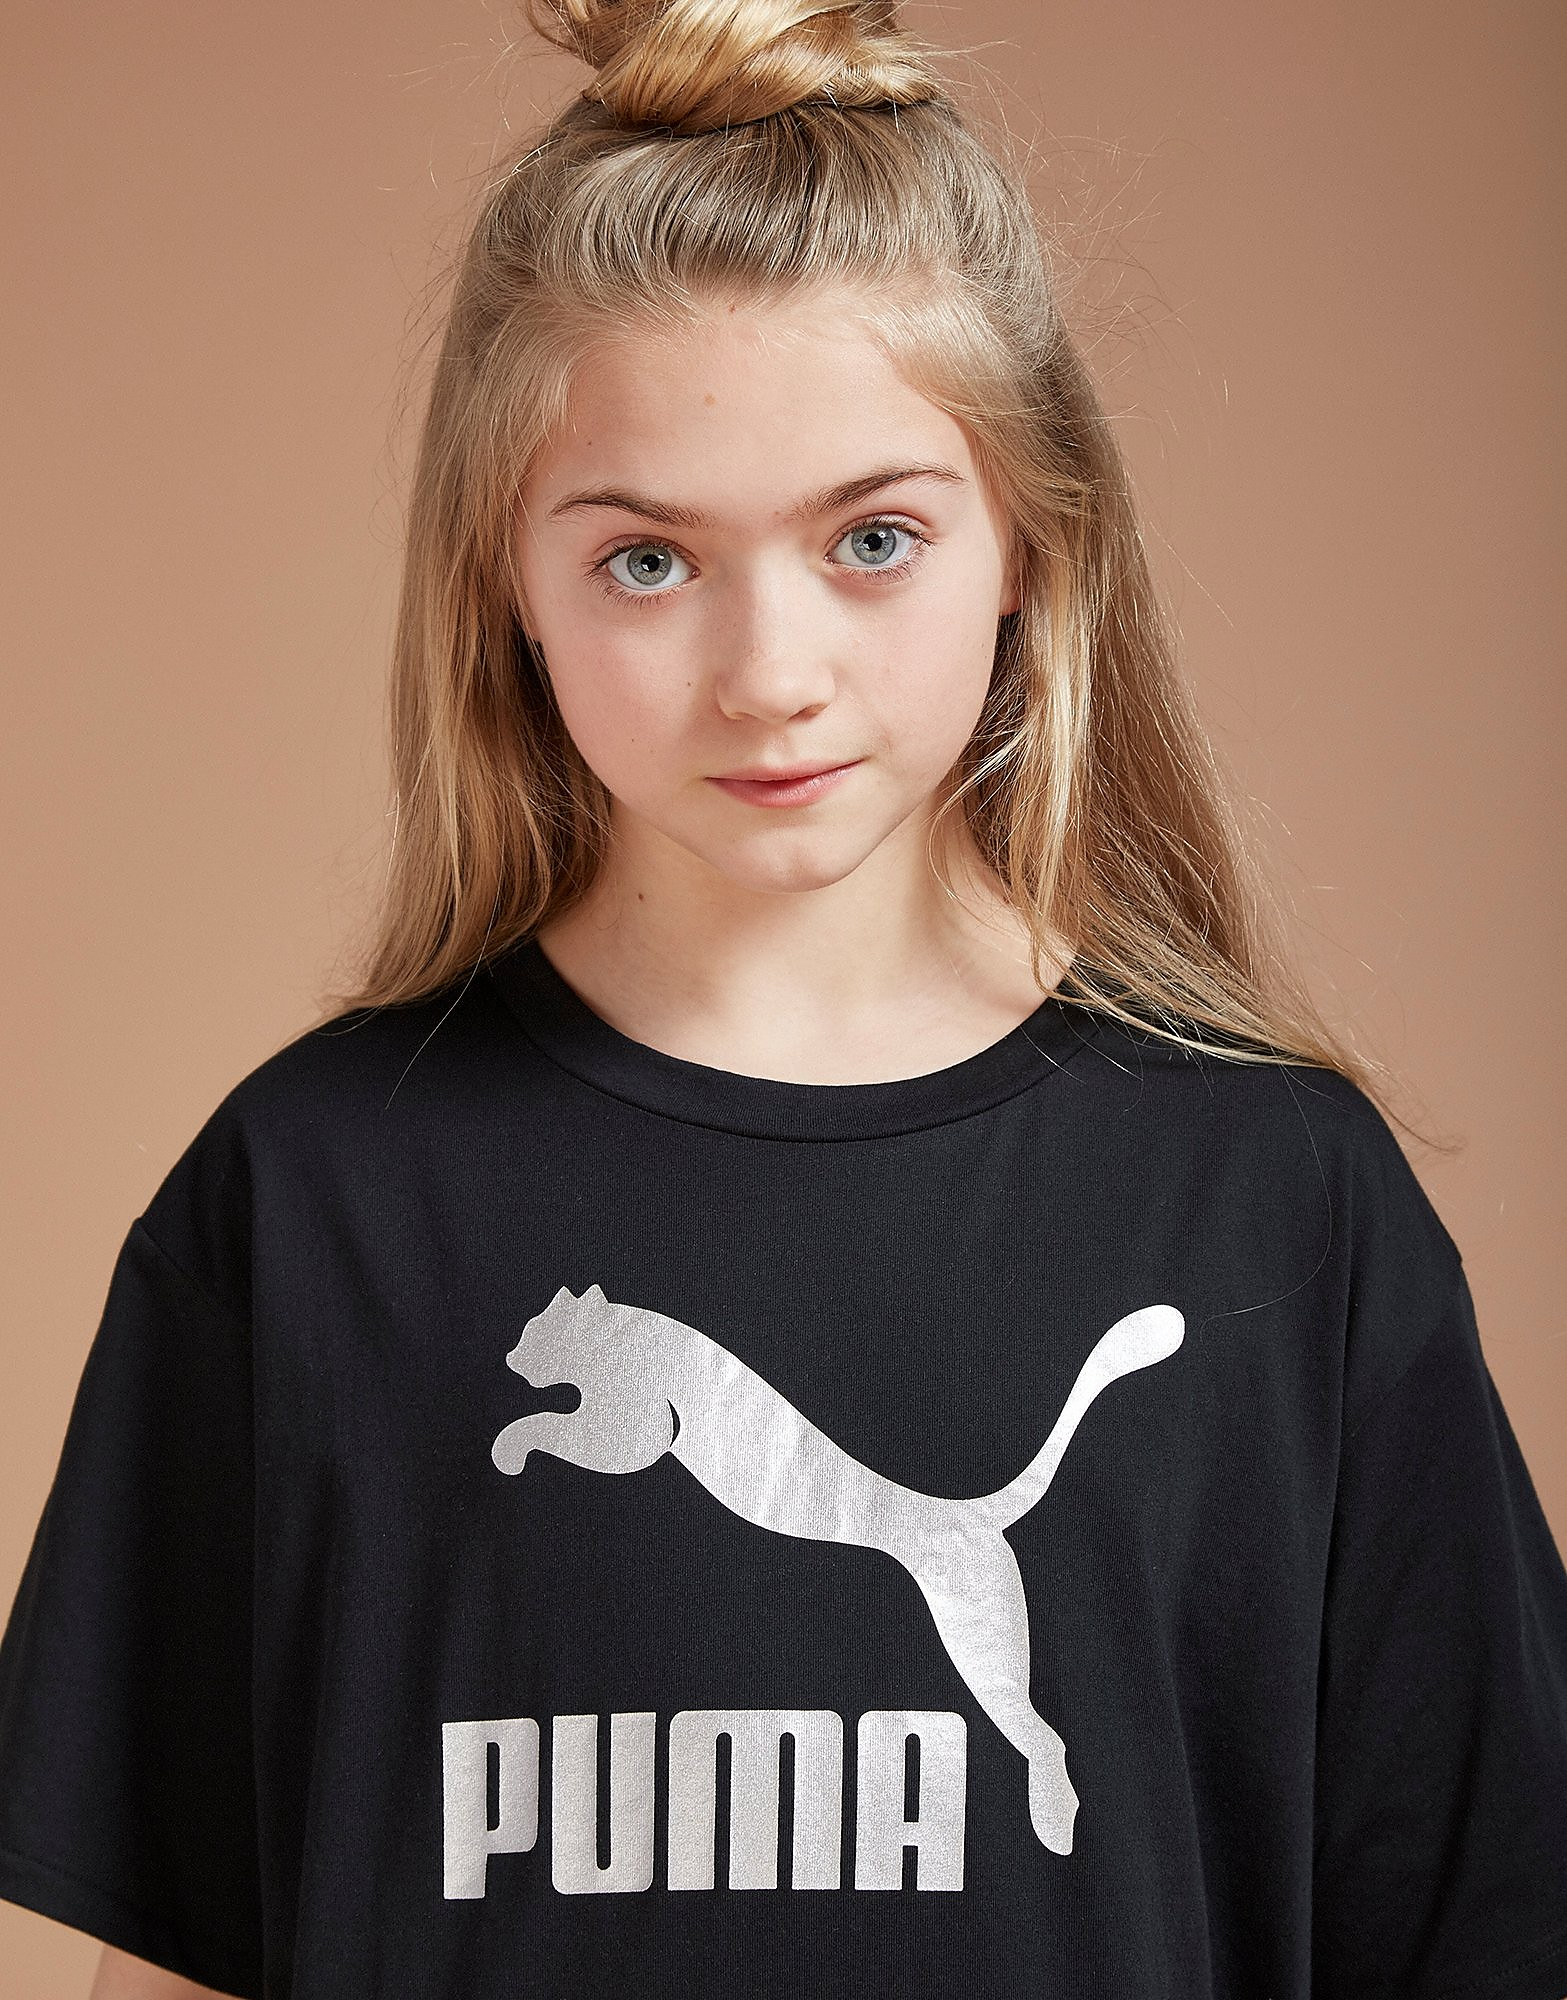 PUMA T-shirt Girls' Classic Boyfriend Junior